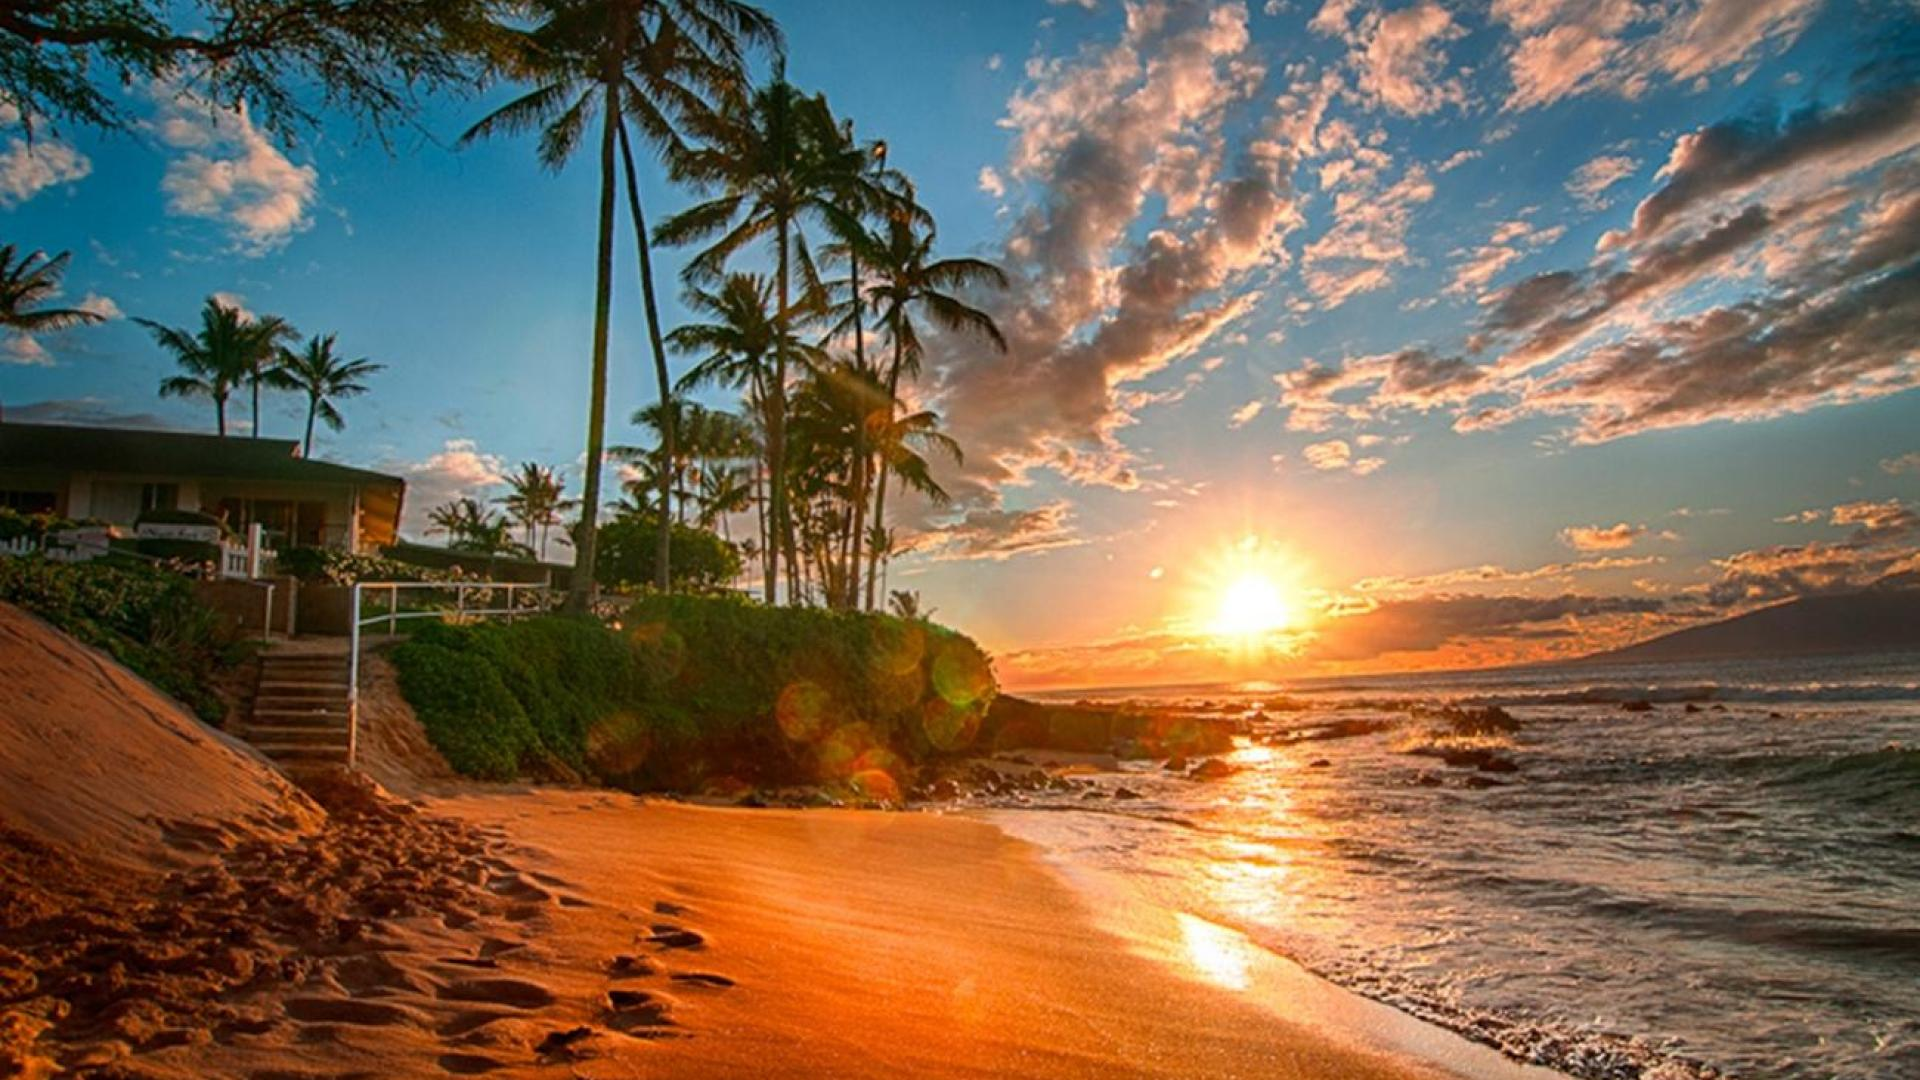 Hawaii Wallpapers Hd: Hawaii Desktop Wallpaper Widescreen